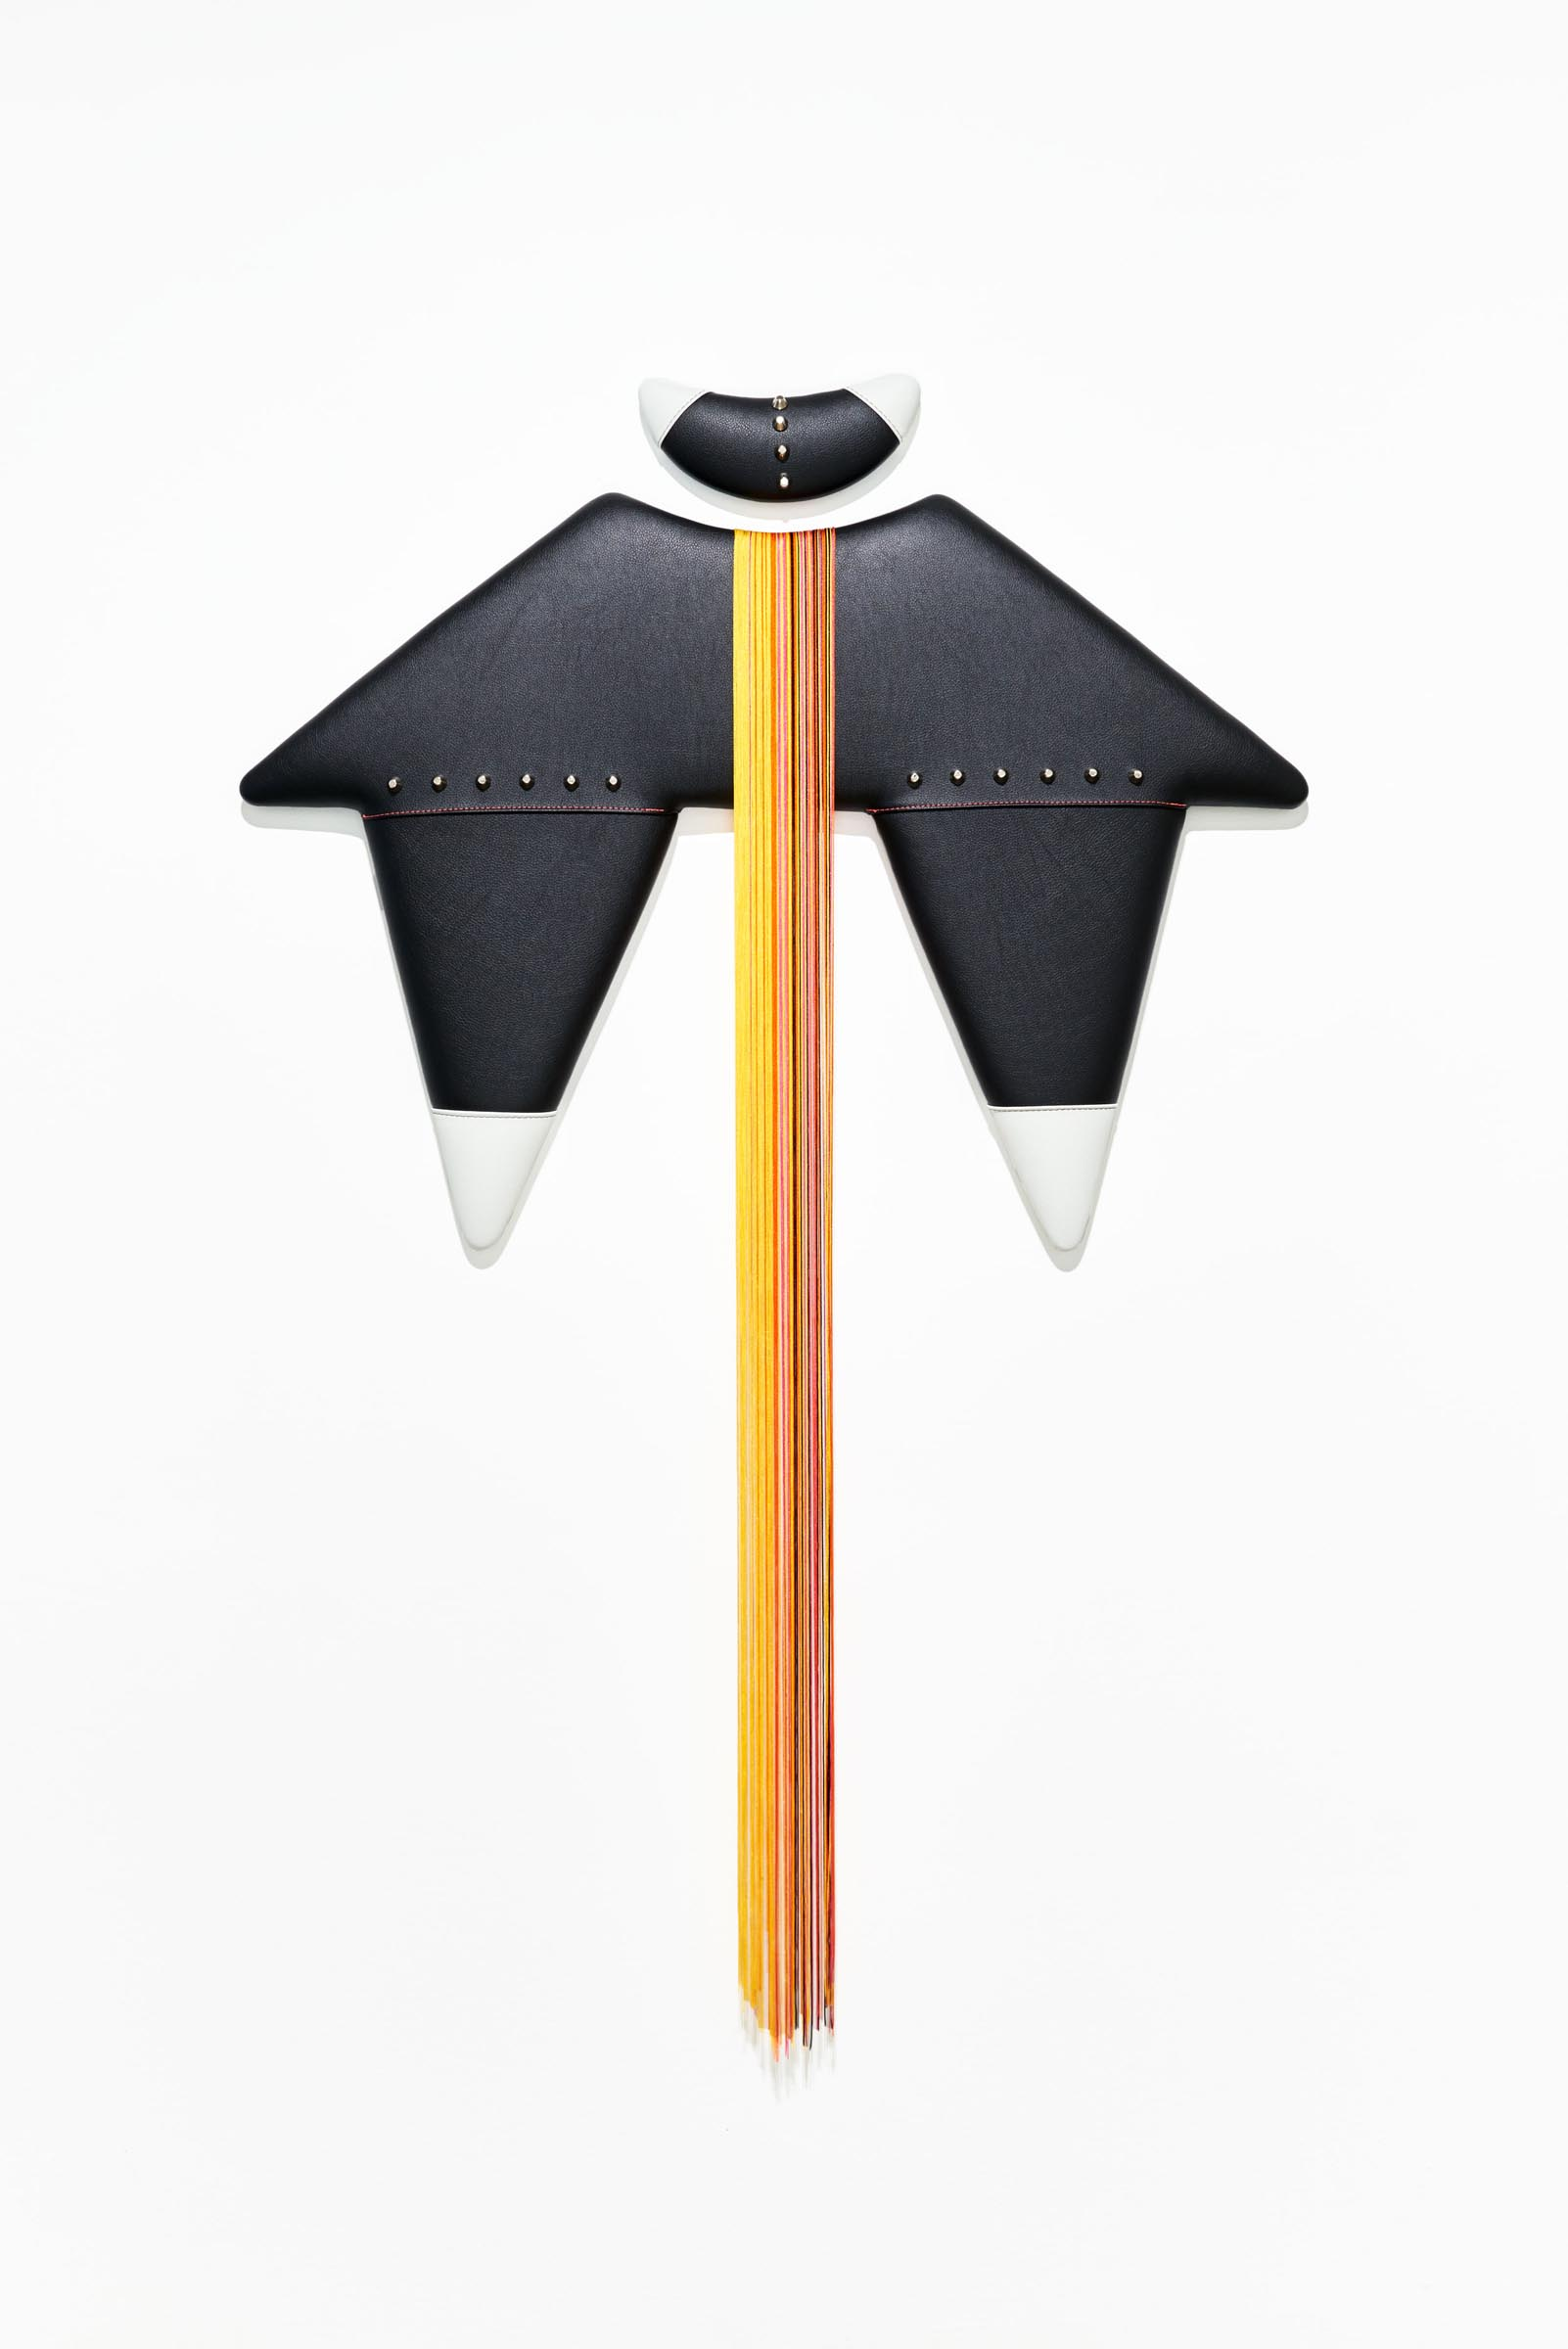 "Trish Tillman, Double Down Vinyl, hardware, tassels, wood, foam 63"" x 40"" x 2"" 2018"